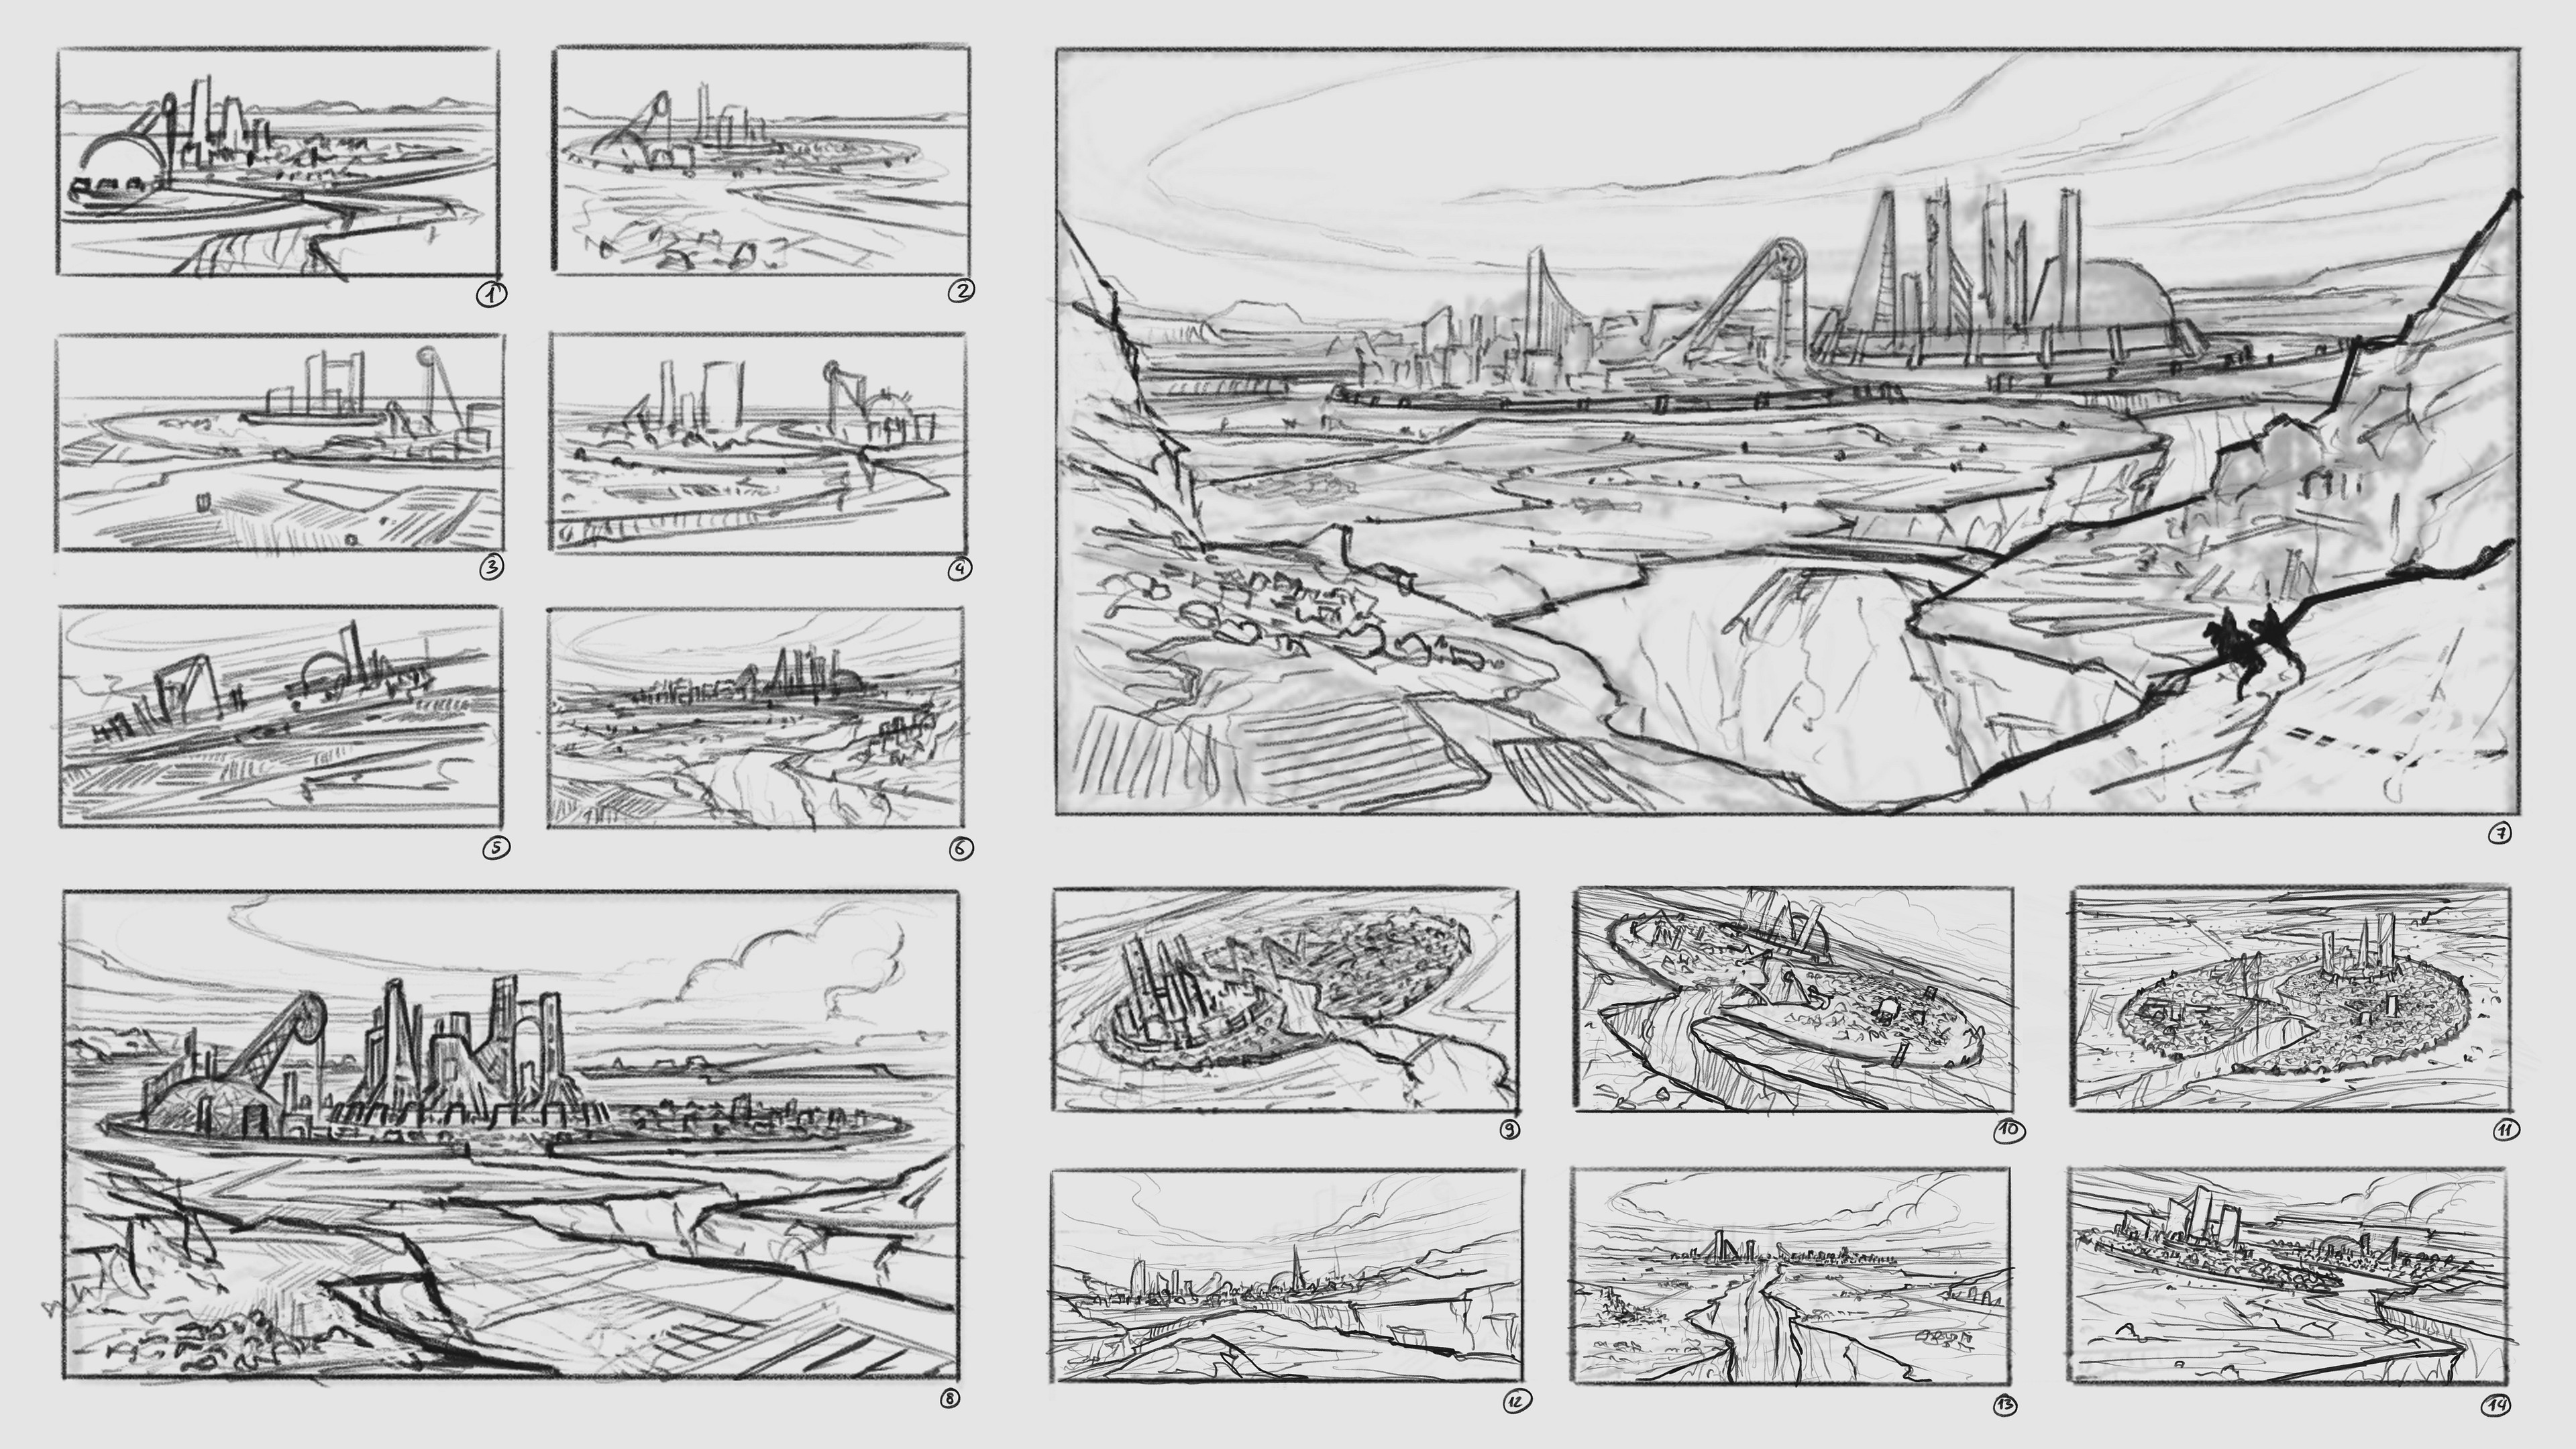 Thumbnail sketches and ideas for the city concept and camera